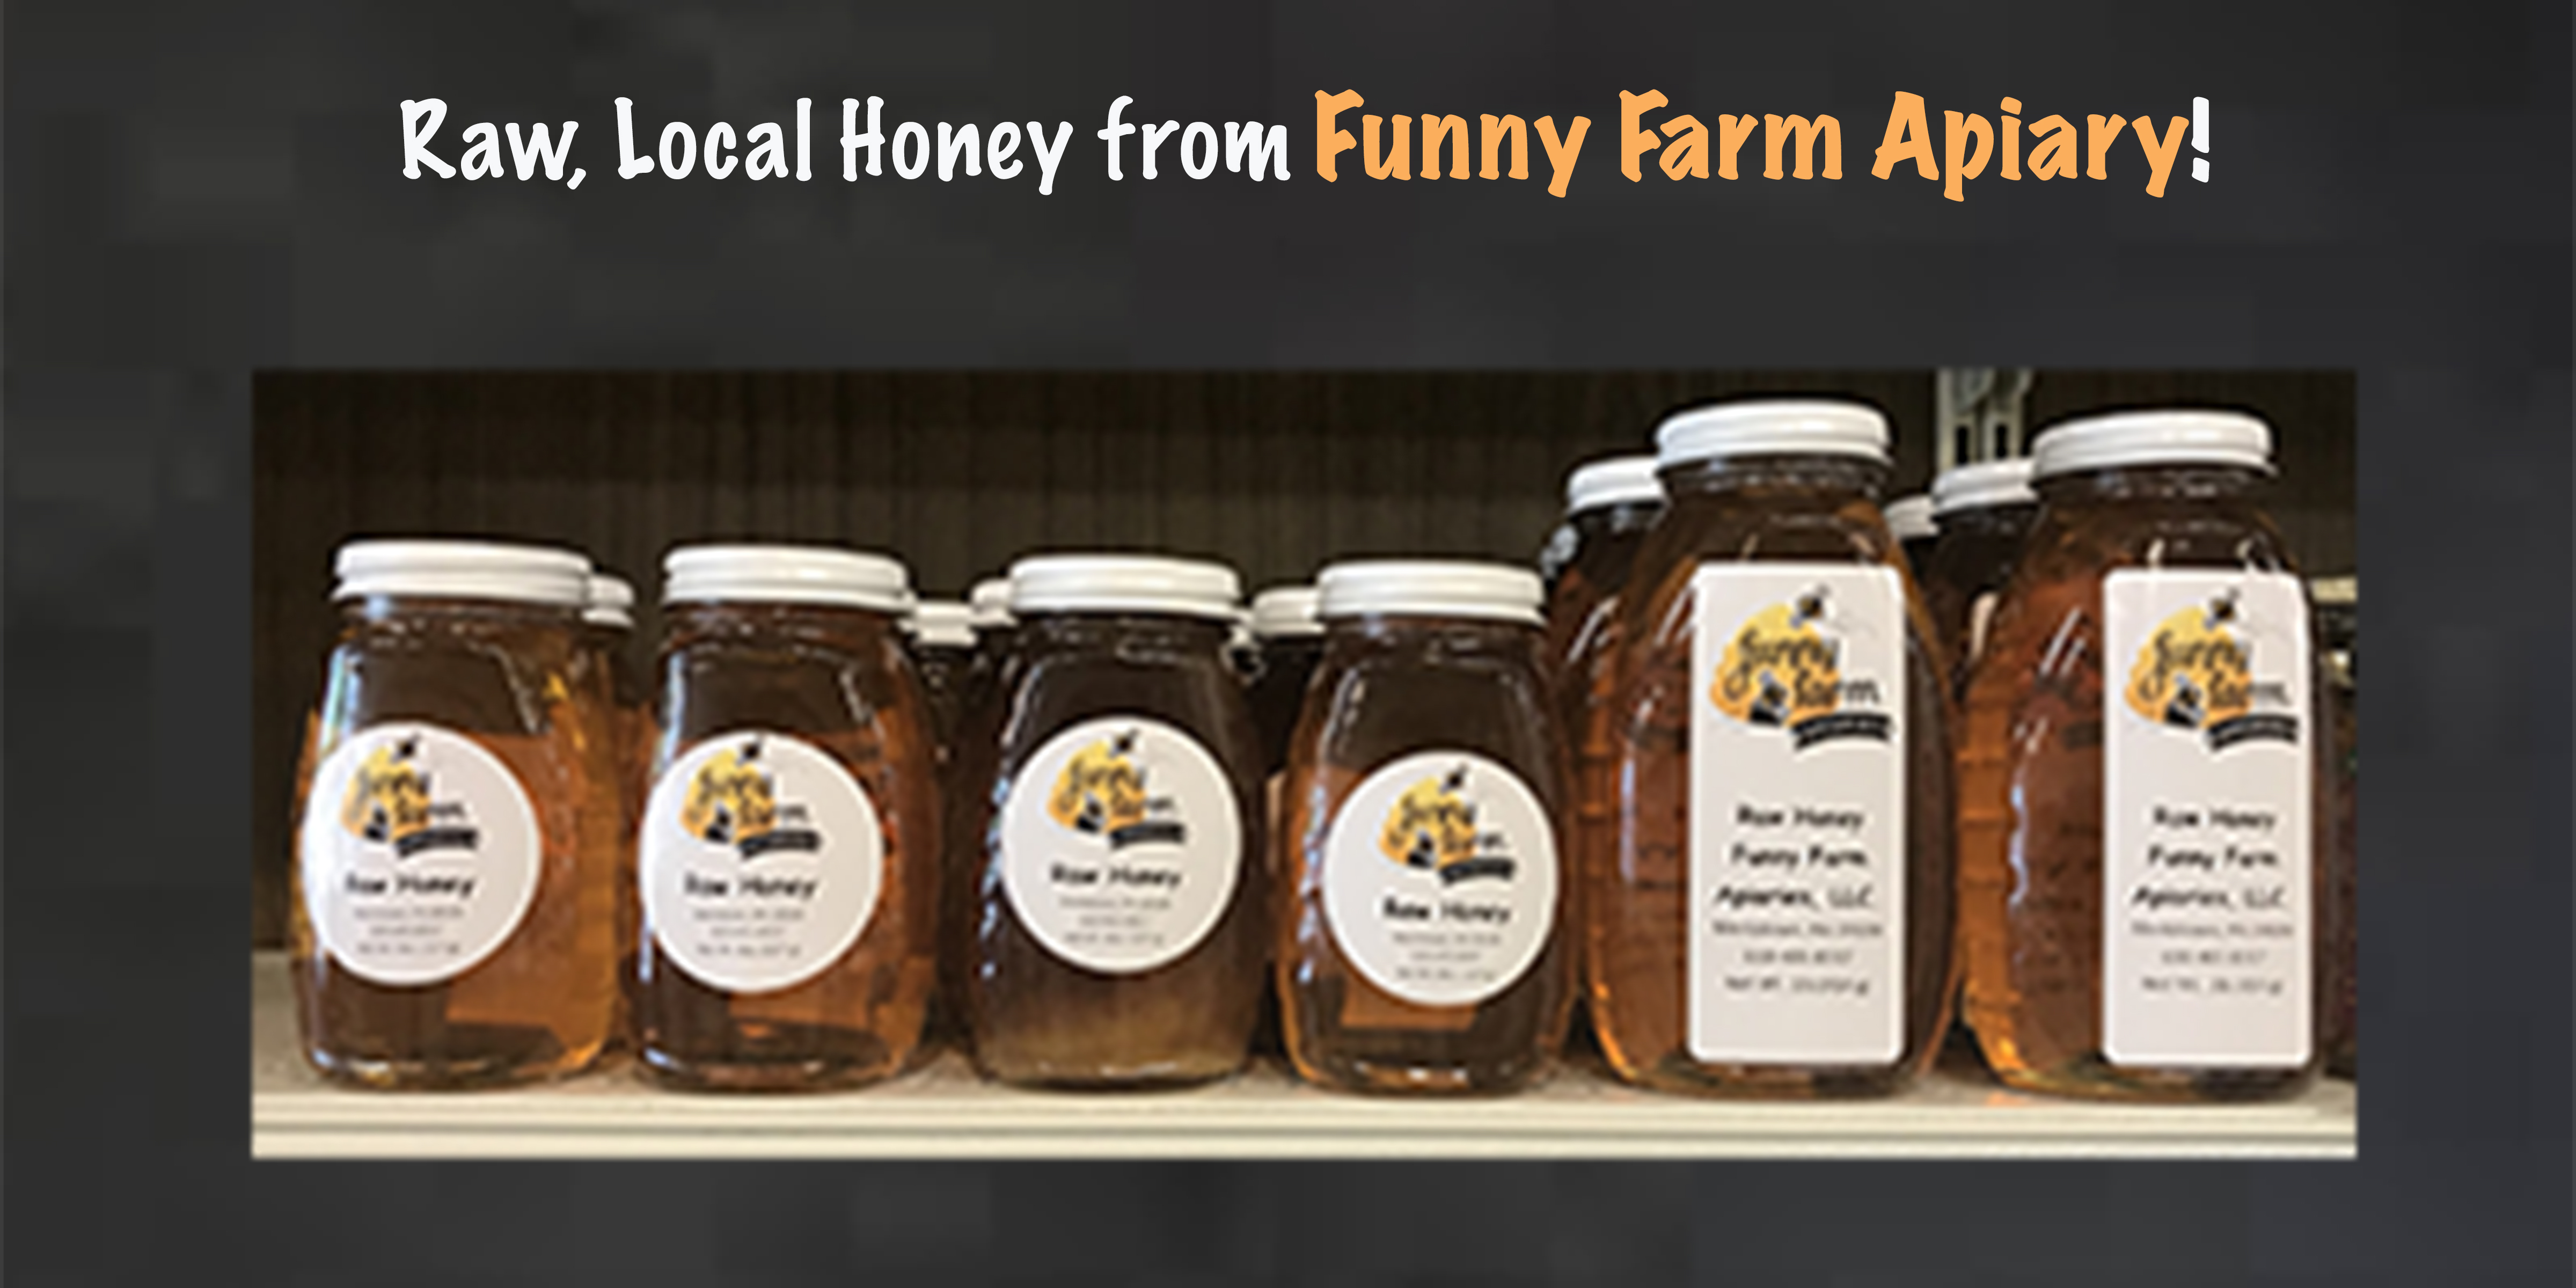 website Funny Farms Apiary